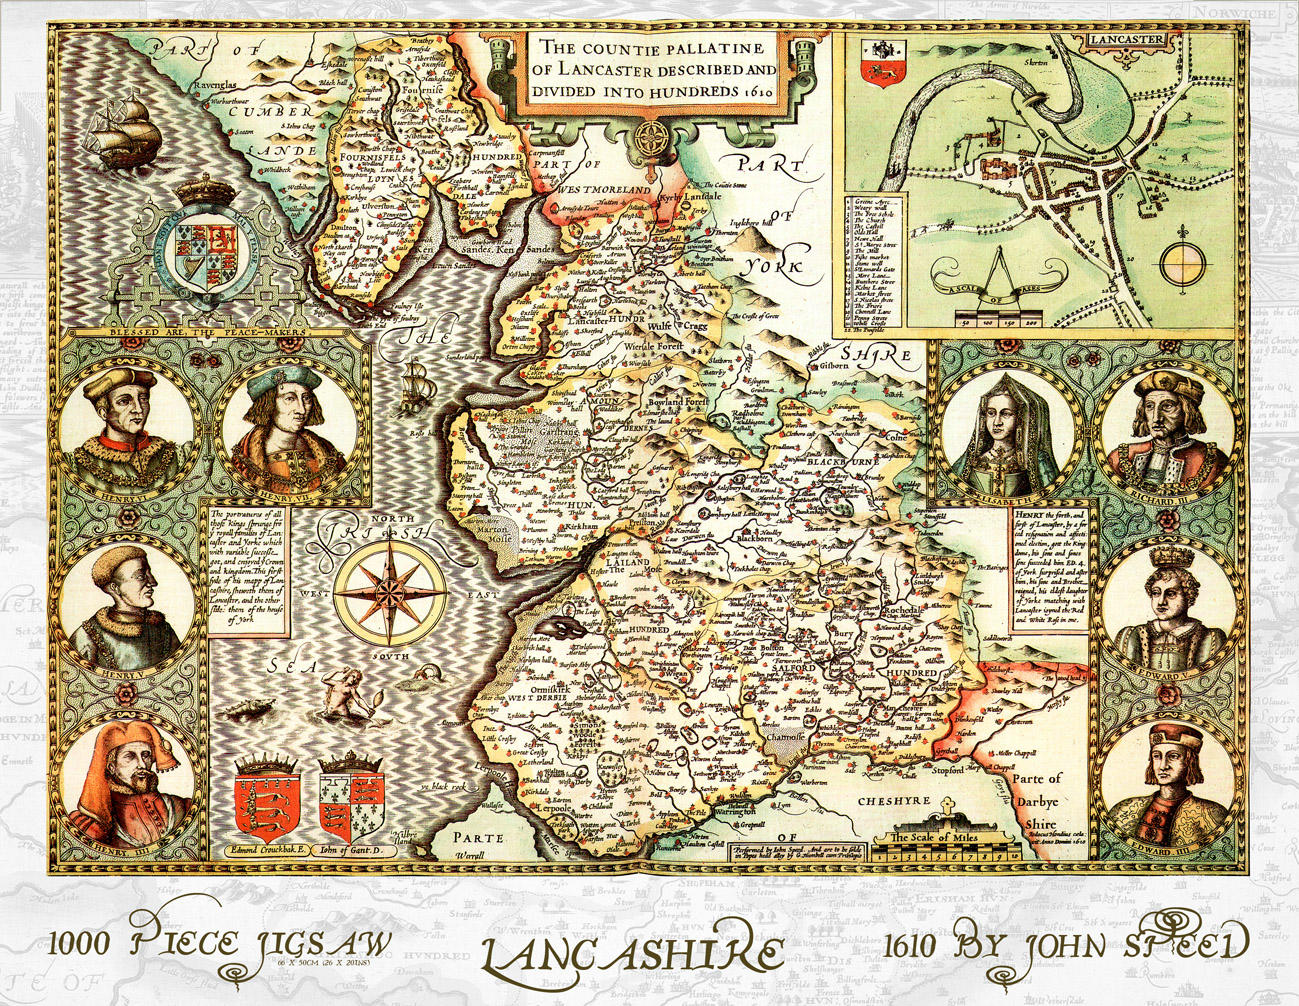 Middleton Fire Map.1610 Lancashire Map By John Speed 1000 Piece Jigsaw Puzzle